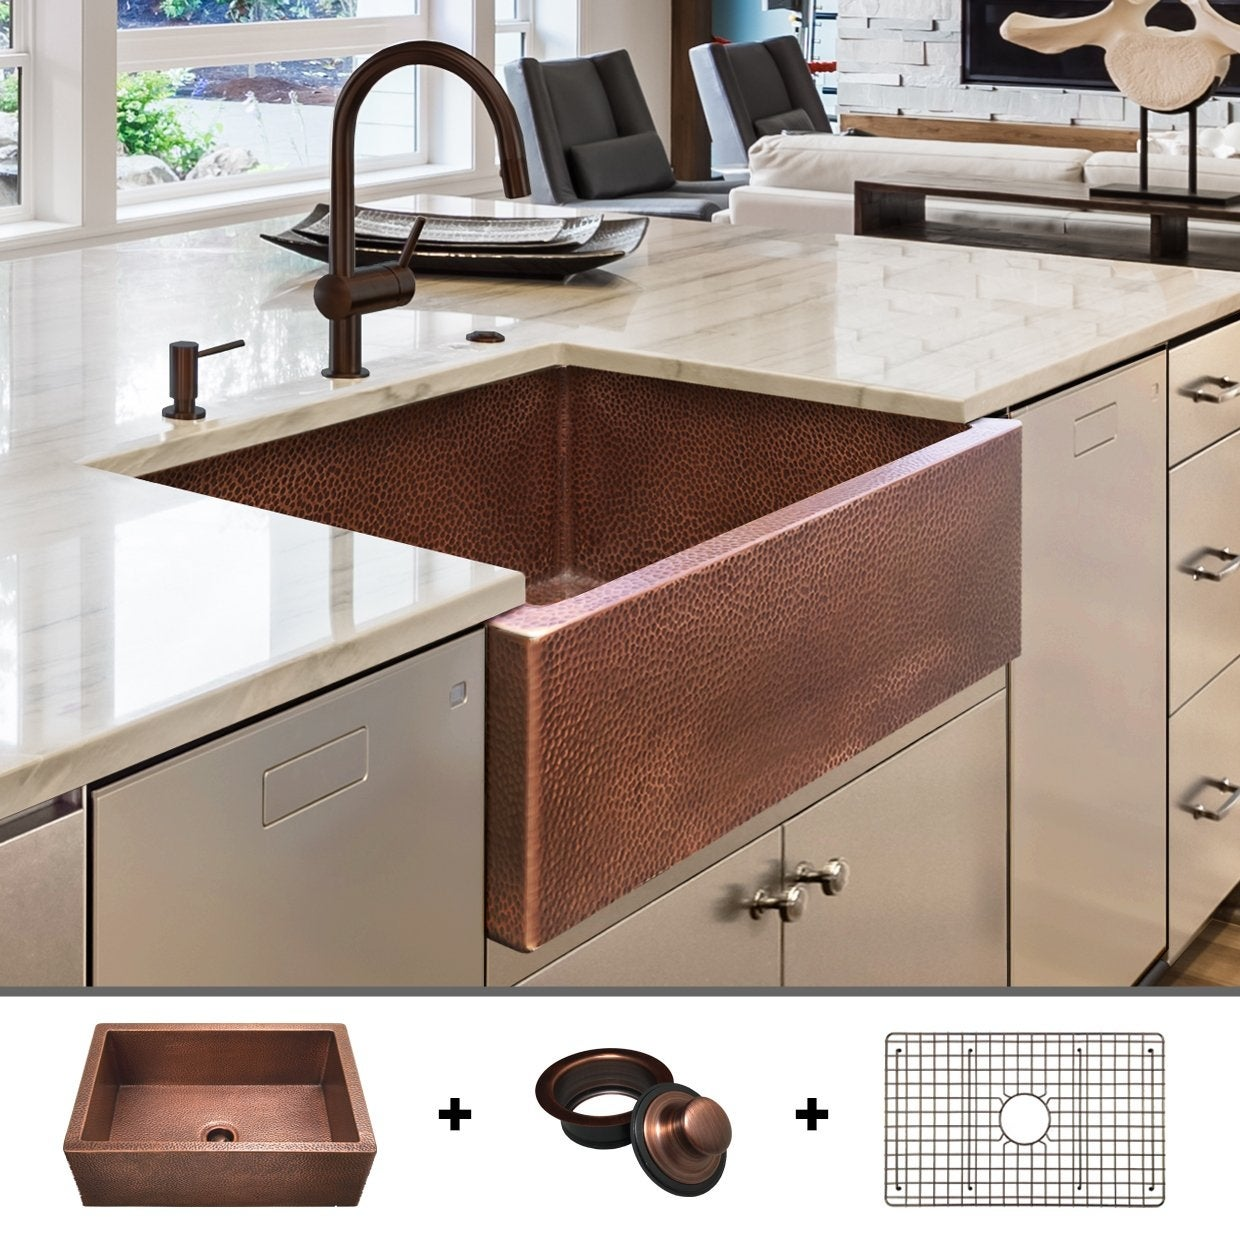 Heavy 12 Gauge Luxury 30 Inch Copper Farmhouse Sink 44 Lbs Of Pure Copper Includes Grid And Flange By Fossil Blu 30 X 22 Overstock 27638405